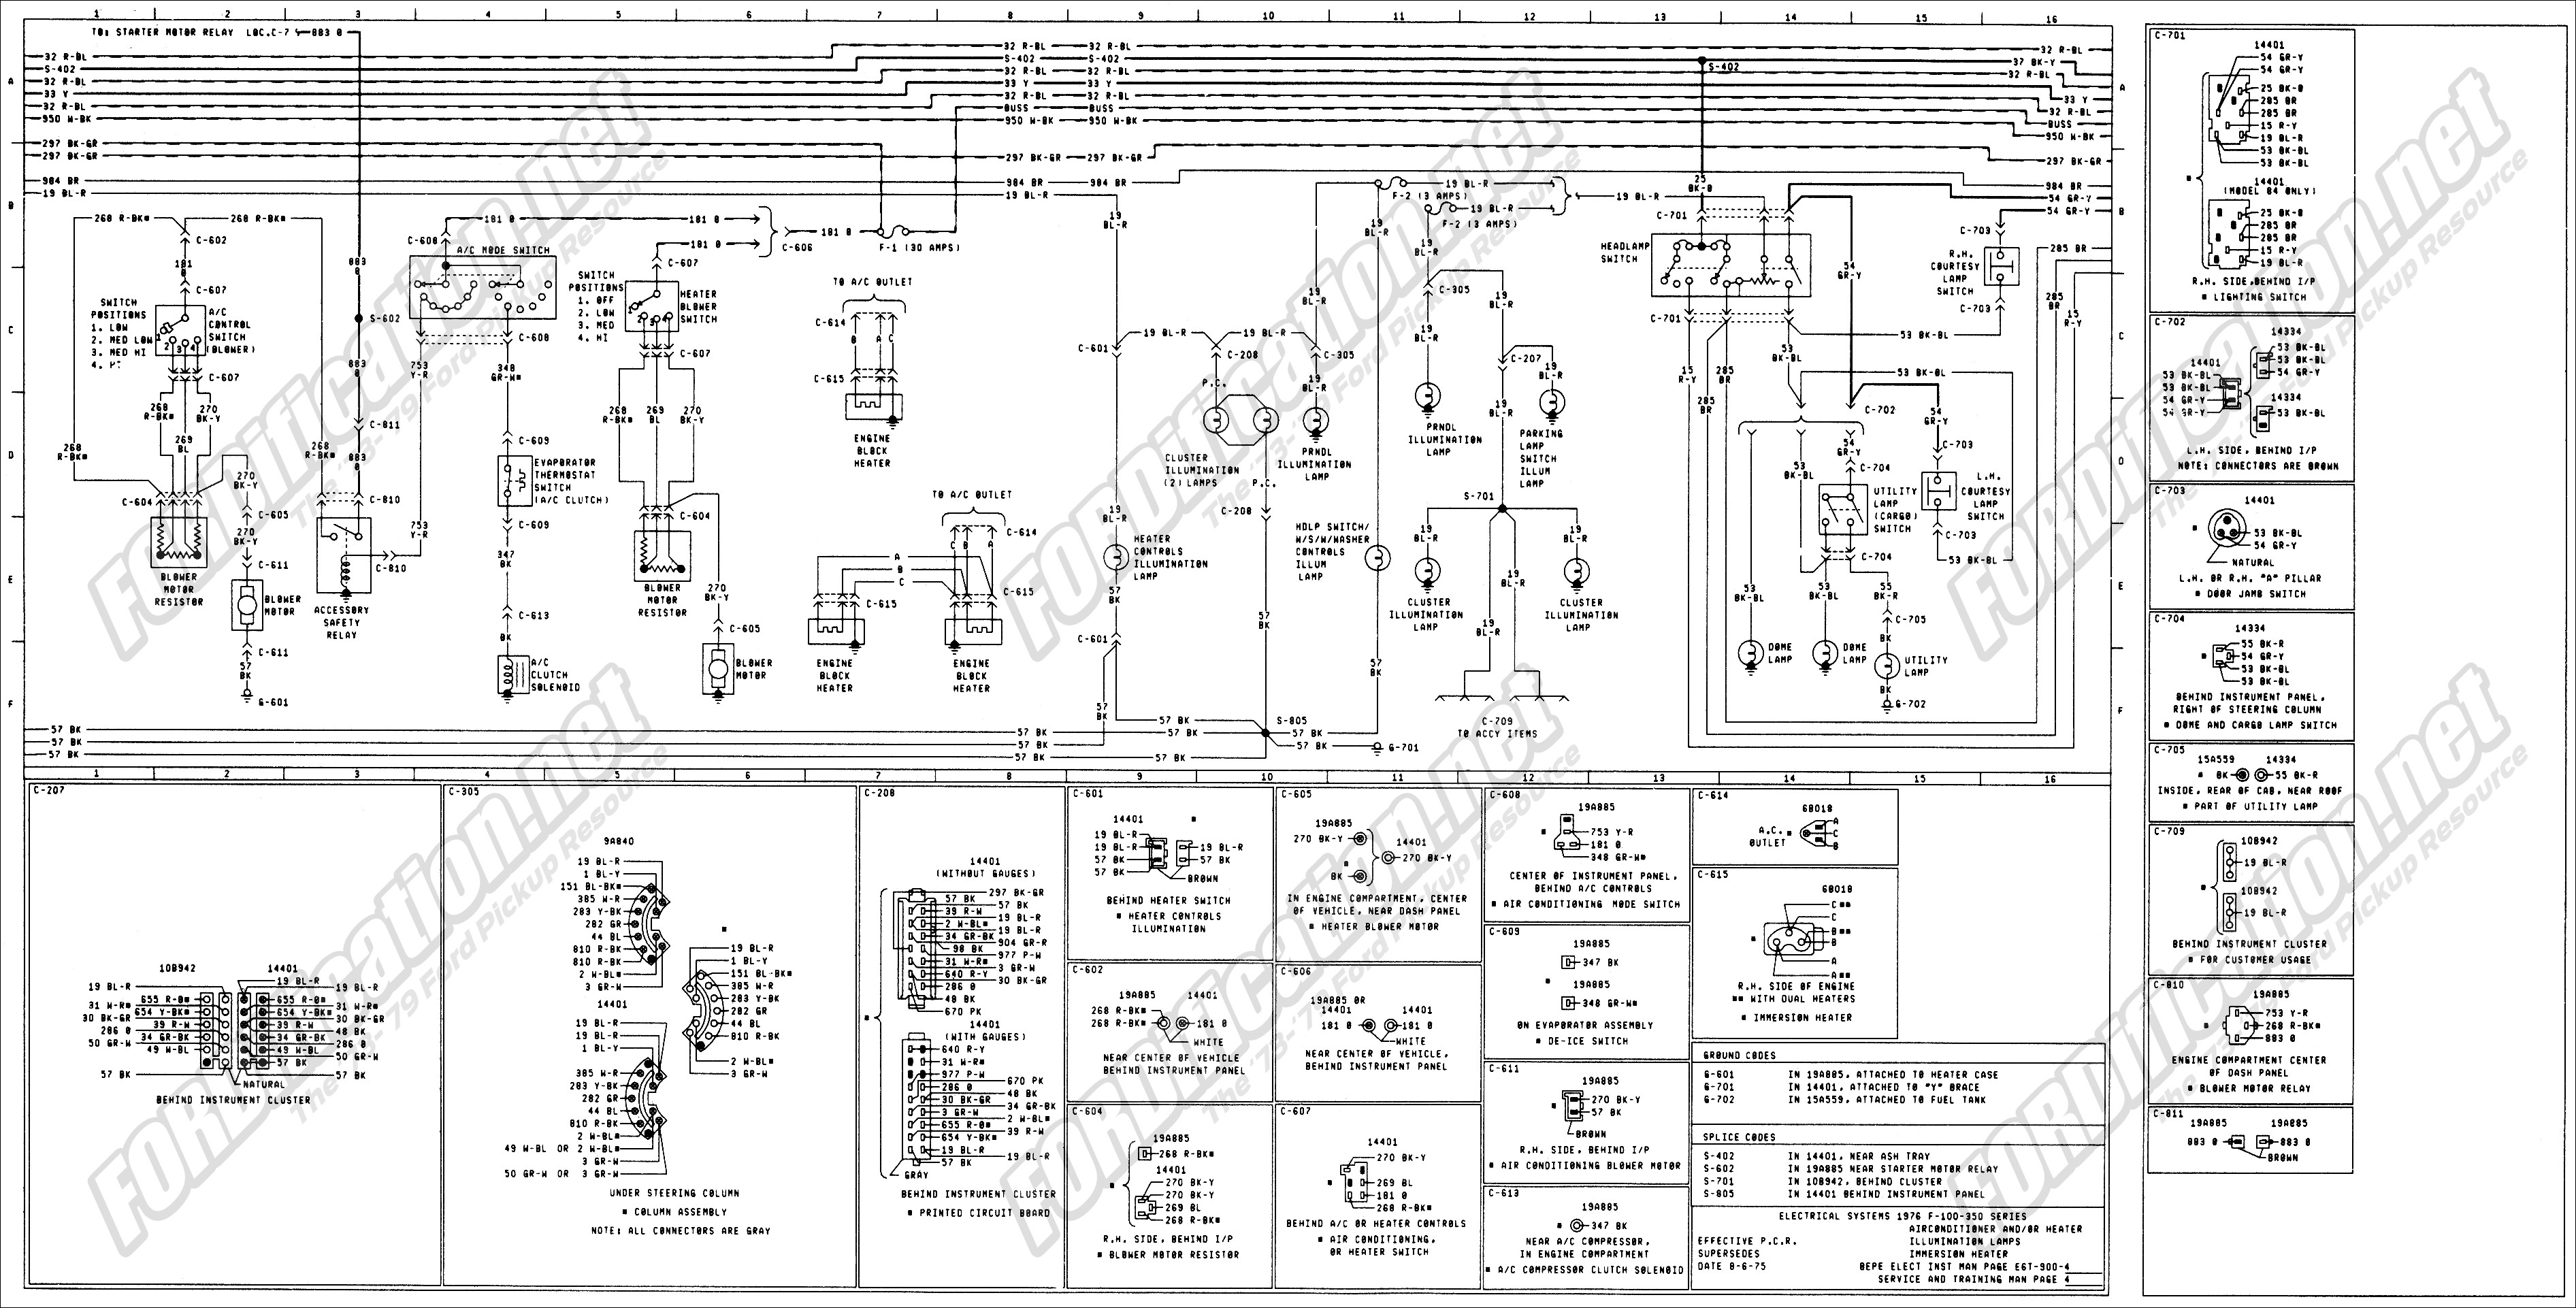 2000 Ford F150 Wiring Diagram Contour Radio 1973 1979 Truck Diagrams Schematics Fordification Of